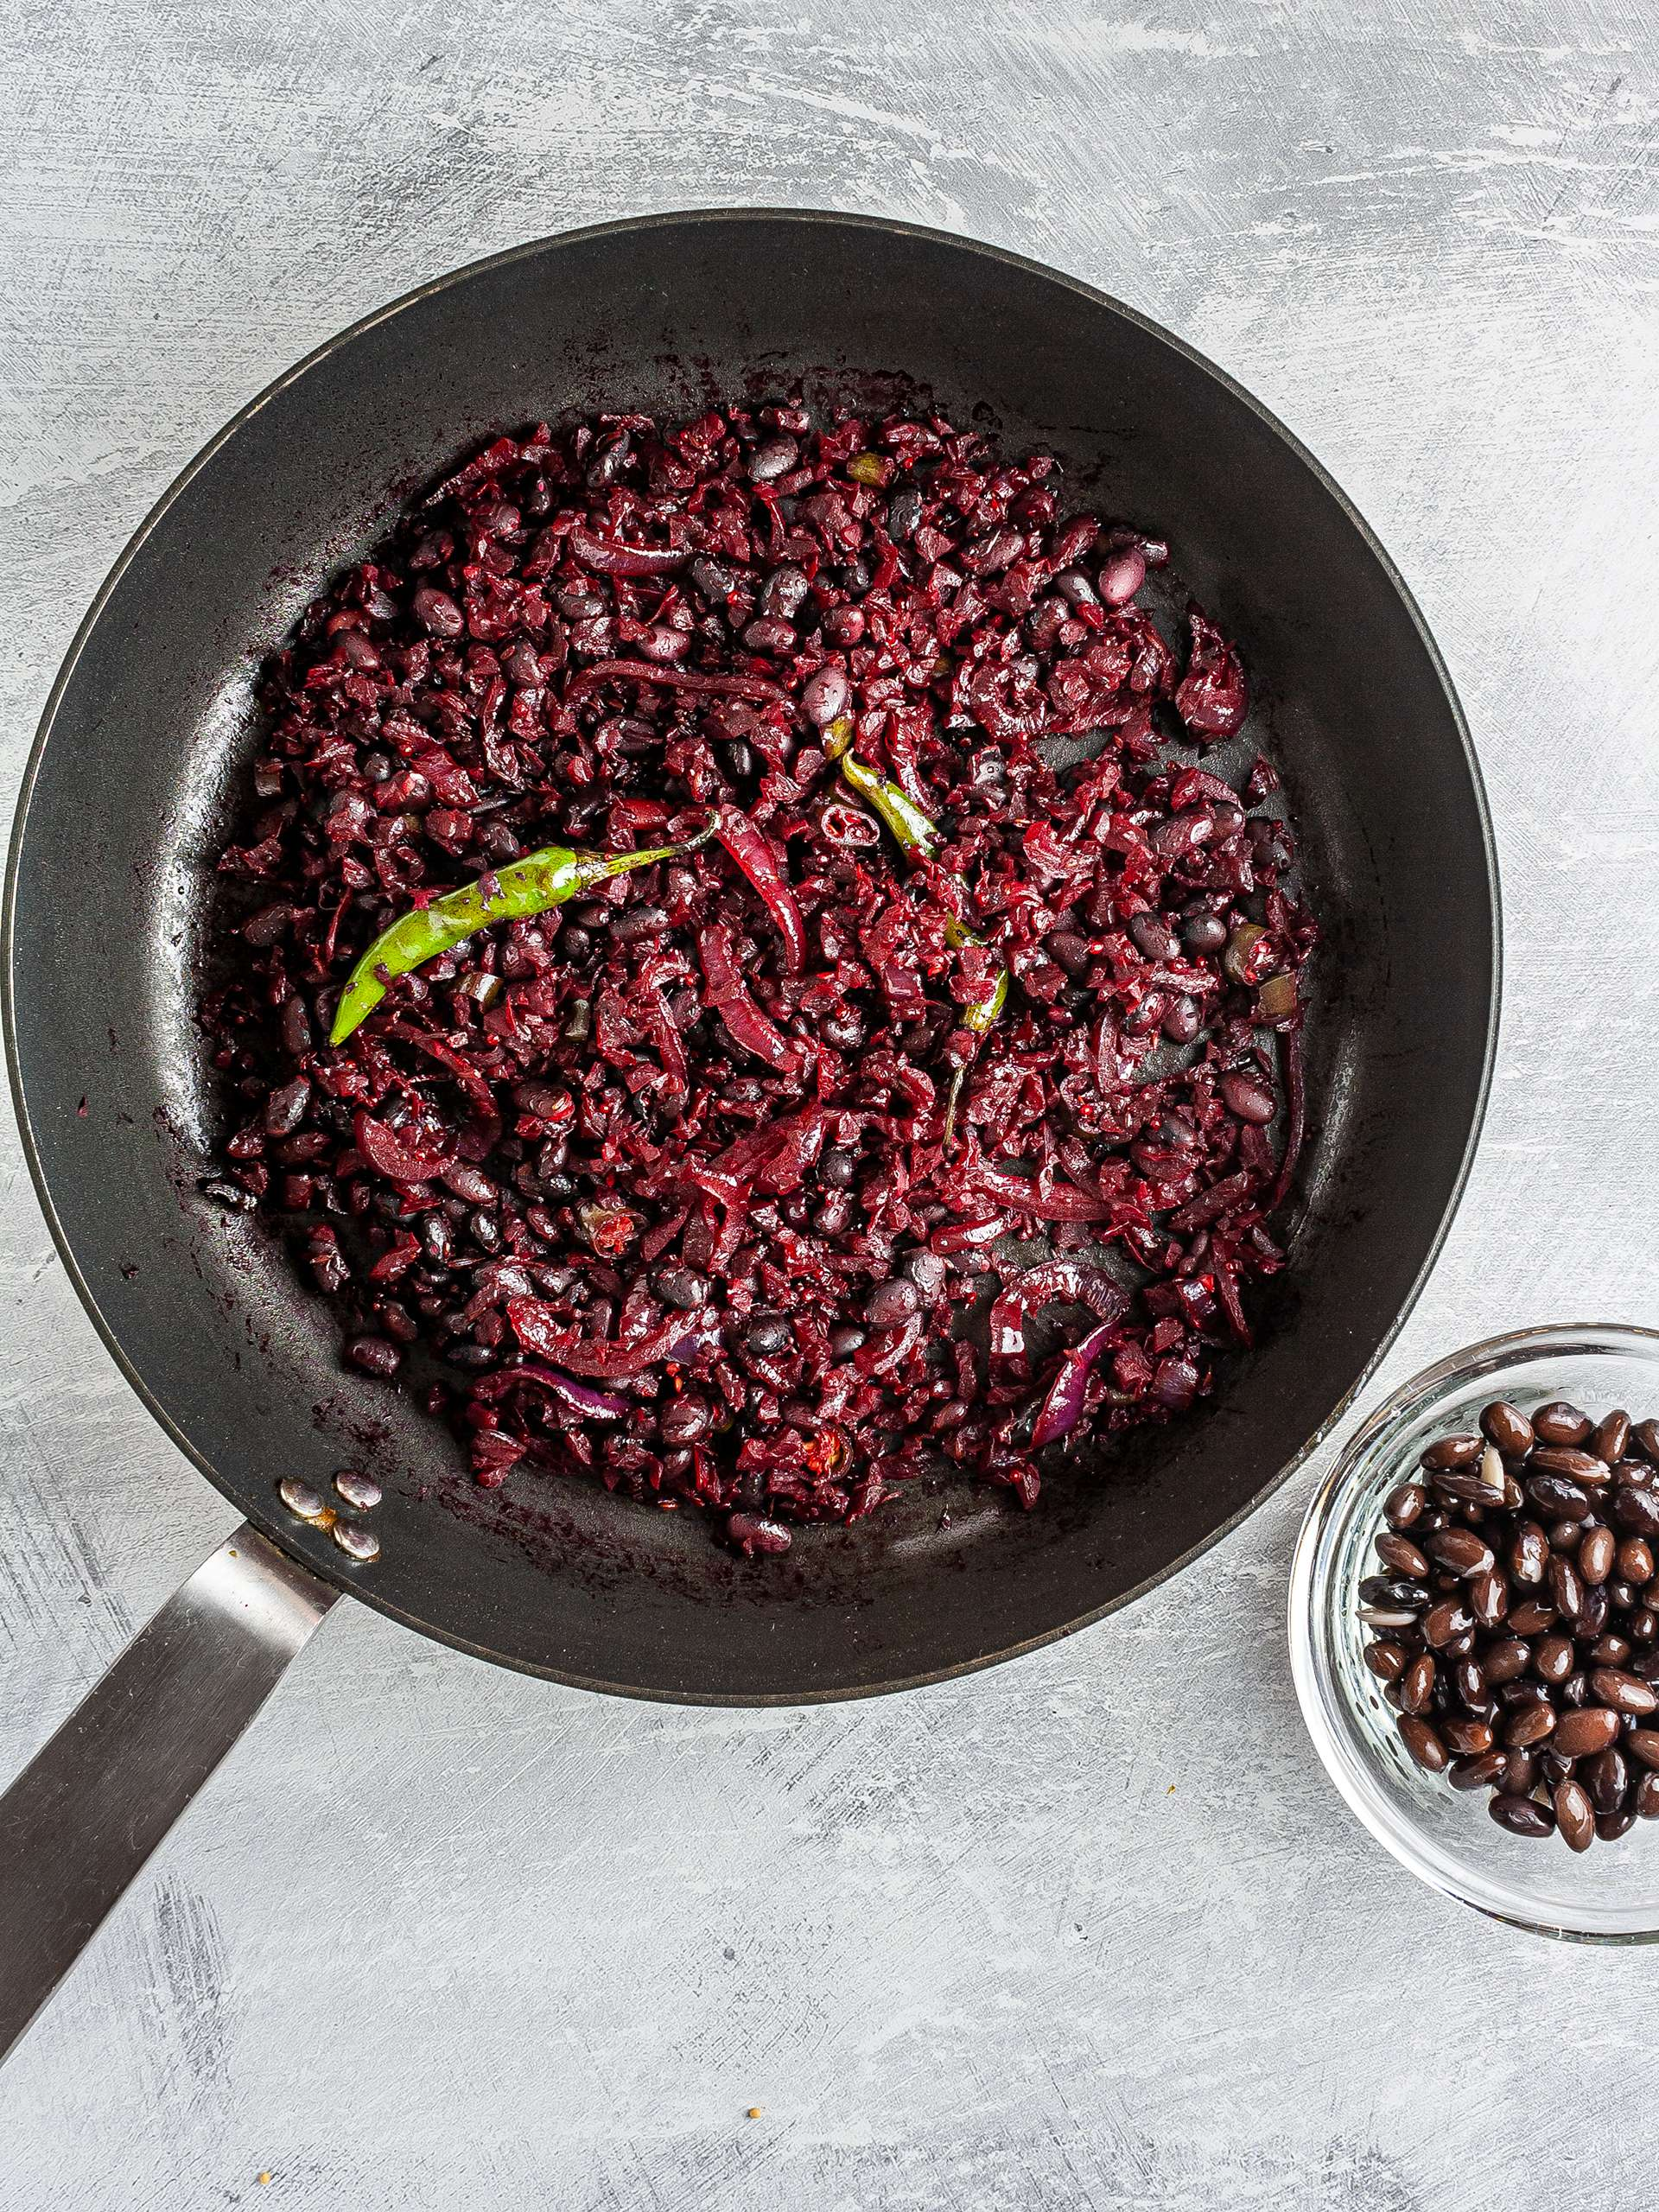 Cooked beetroots and black beans